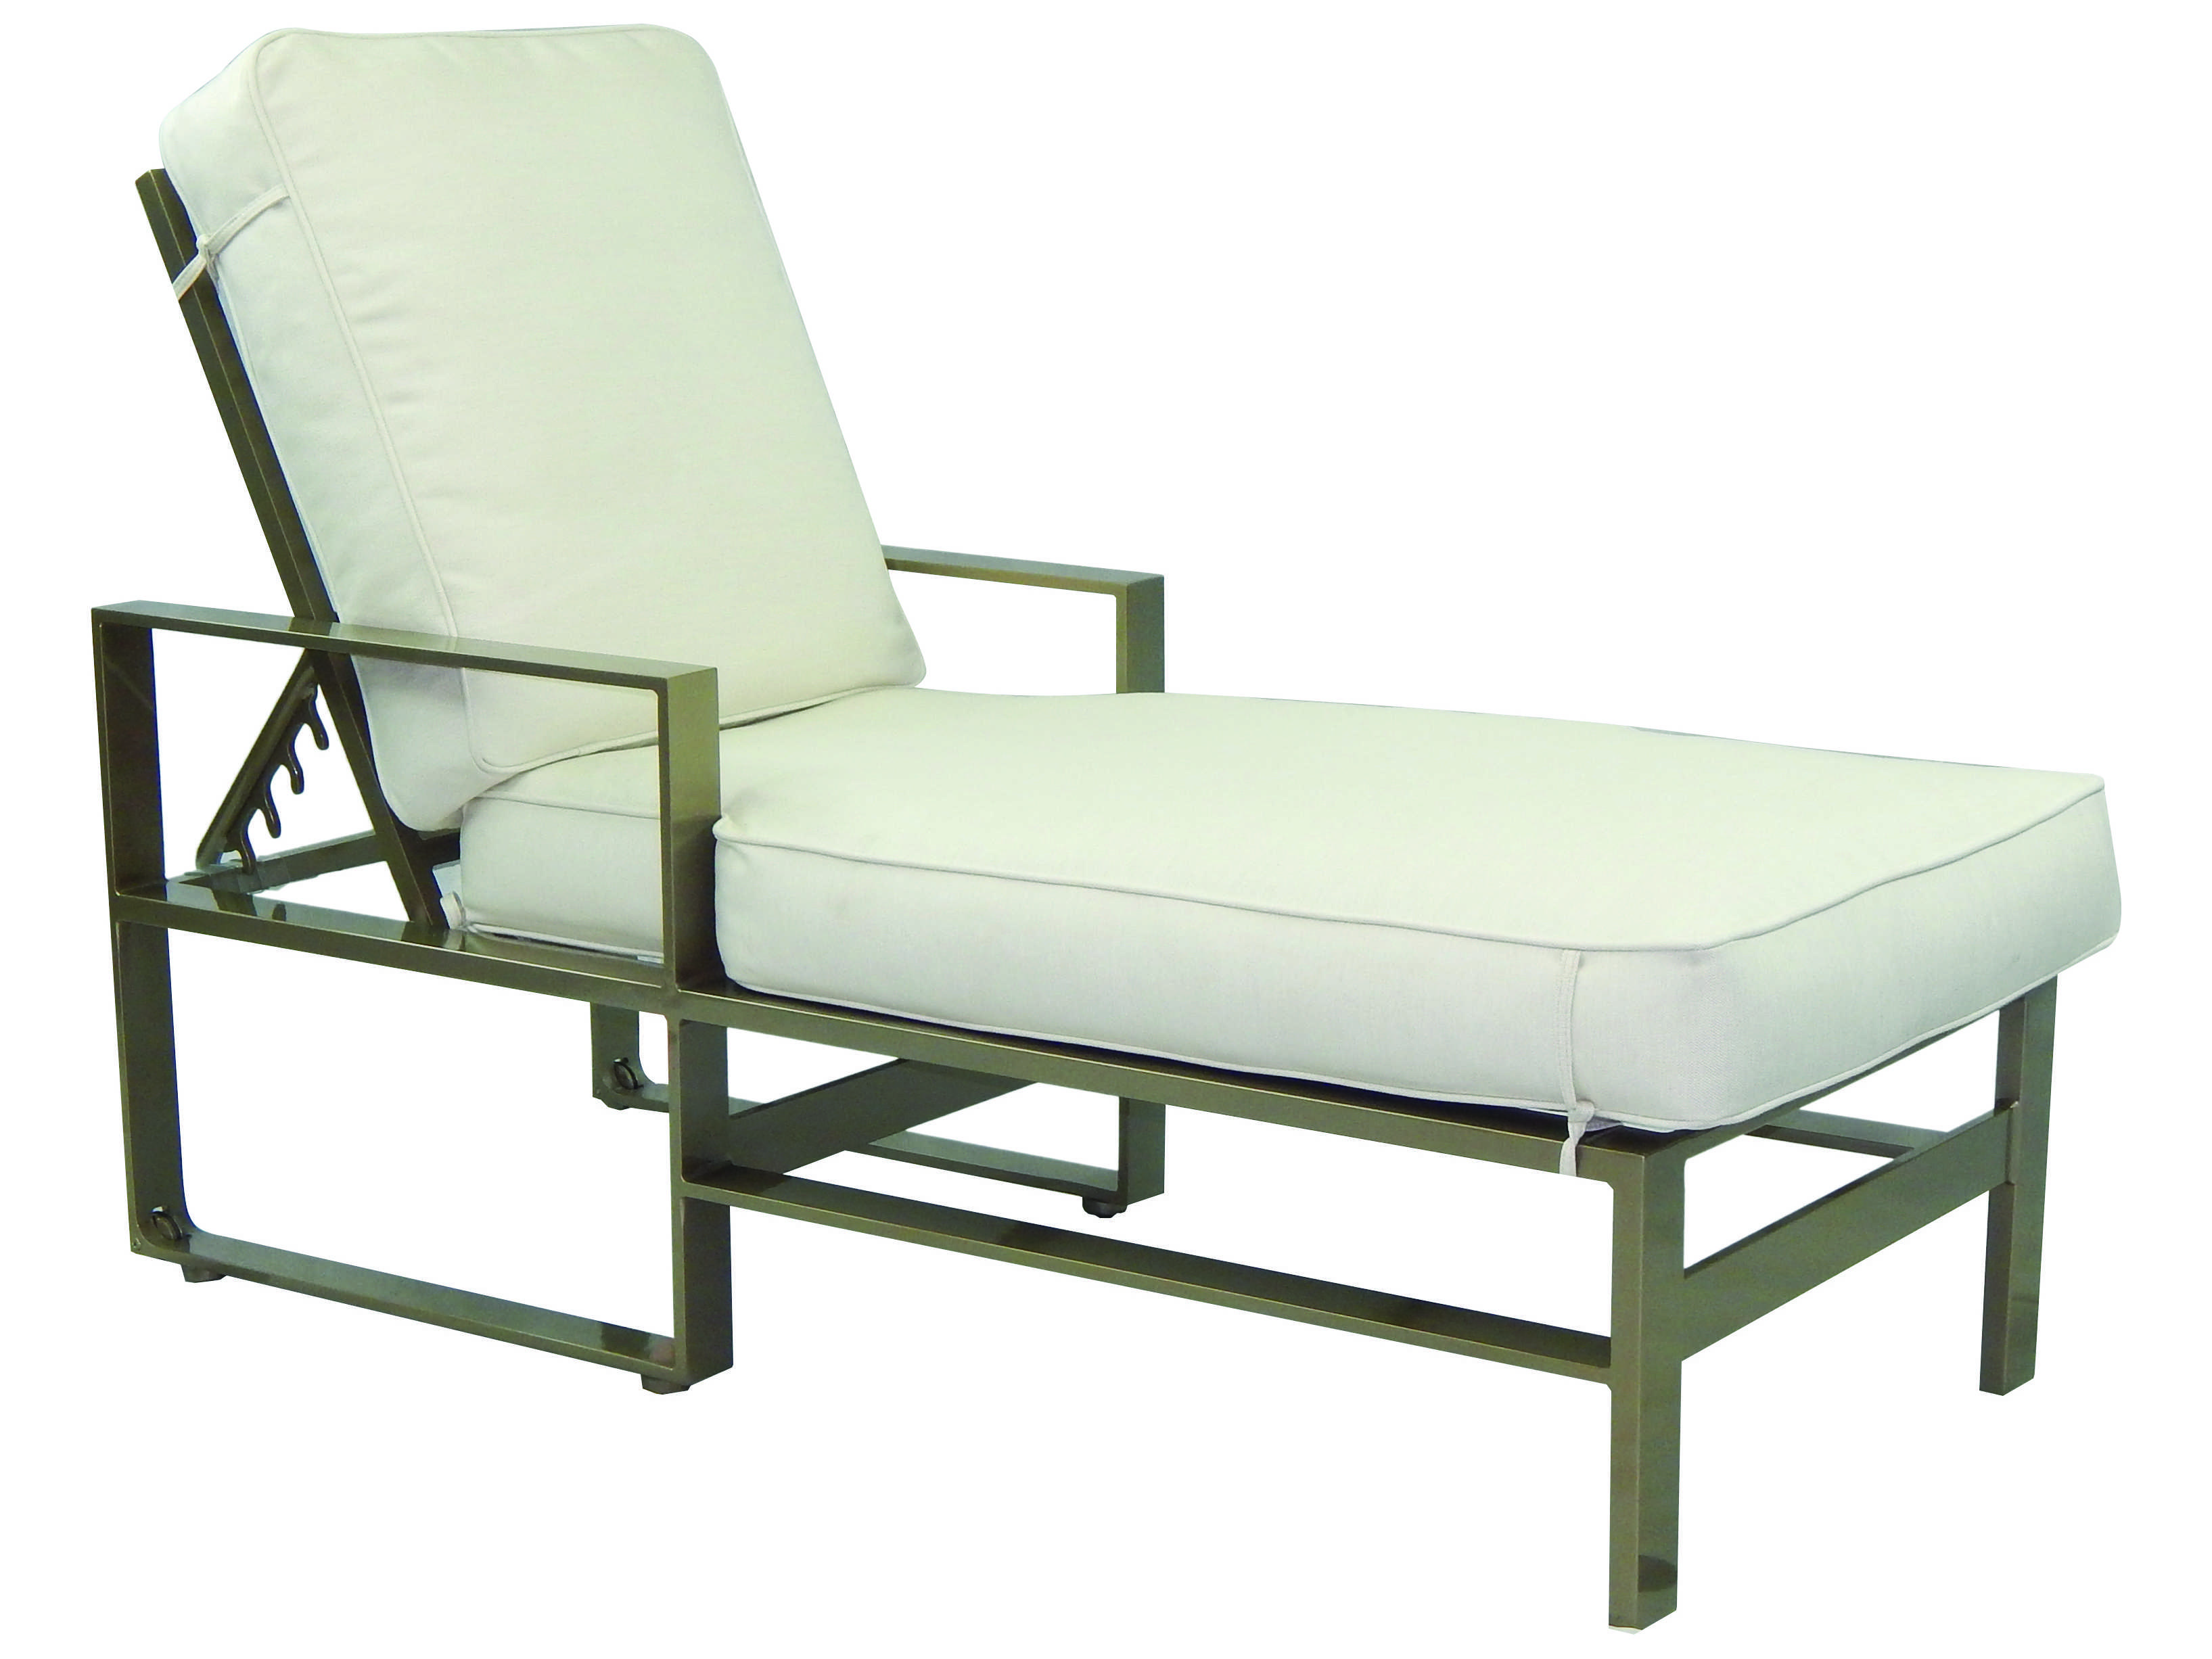 Castelle park place cushion cast aluminum adjustable for Cast aluminum chaise